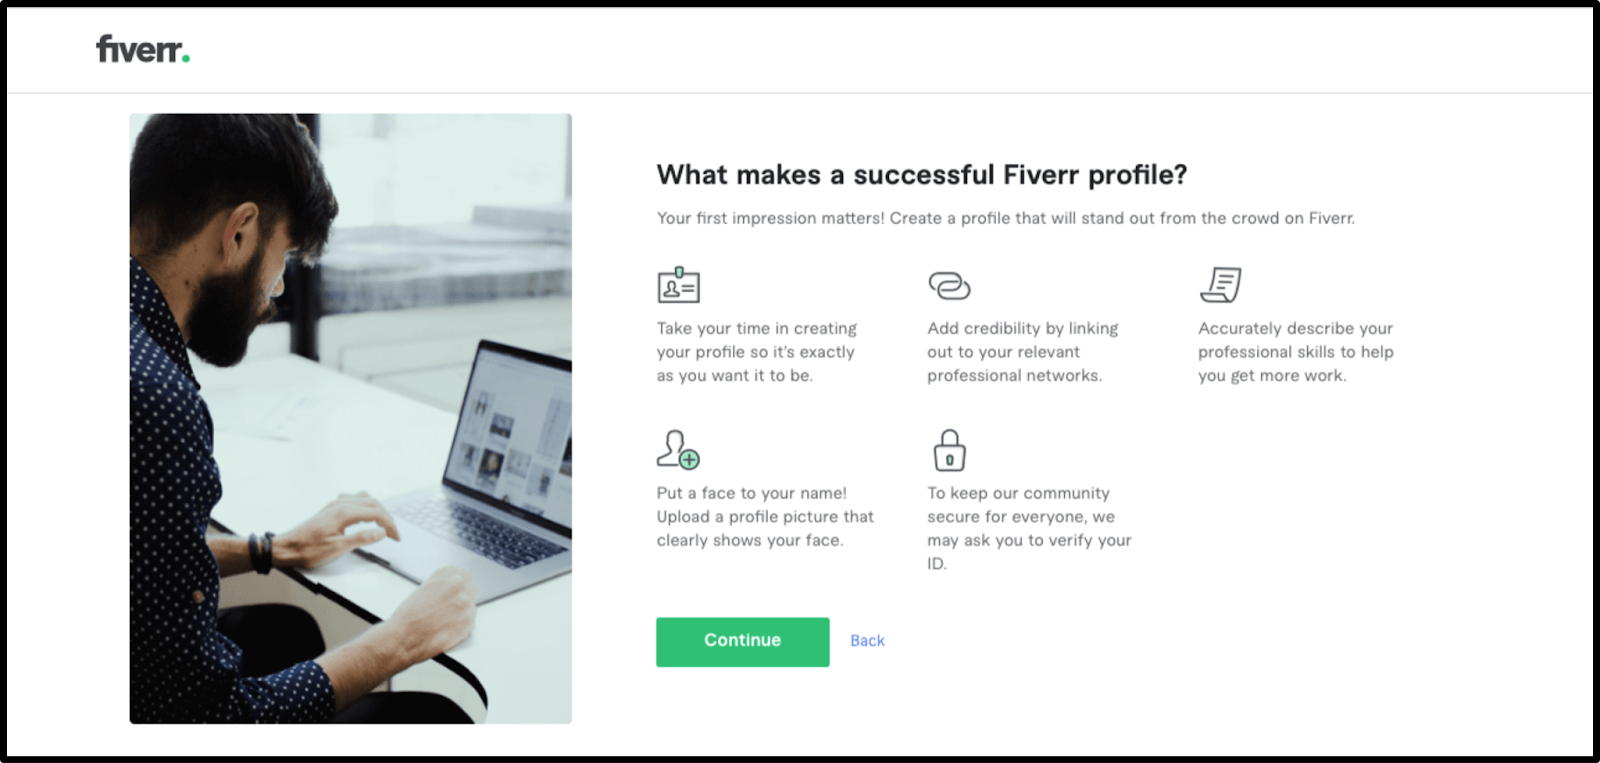 'What makes a successful Fiver profile' guidelines